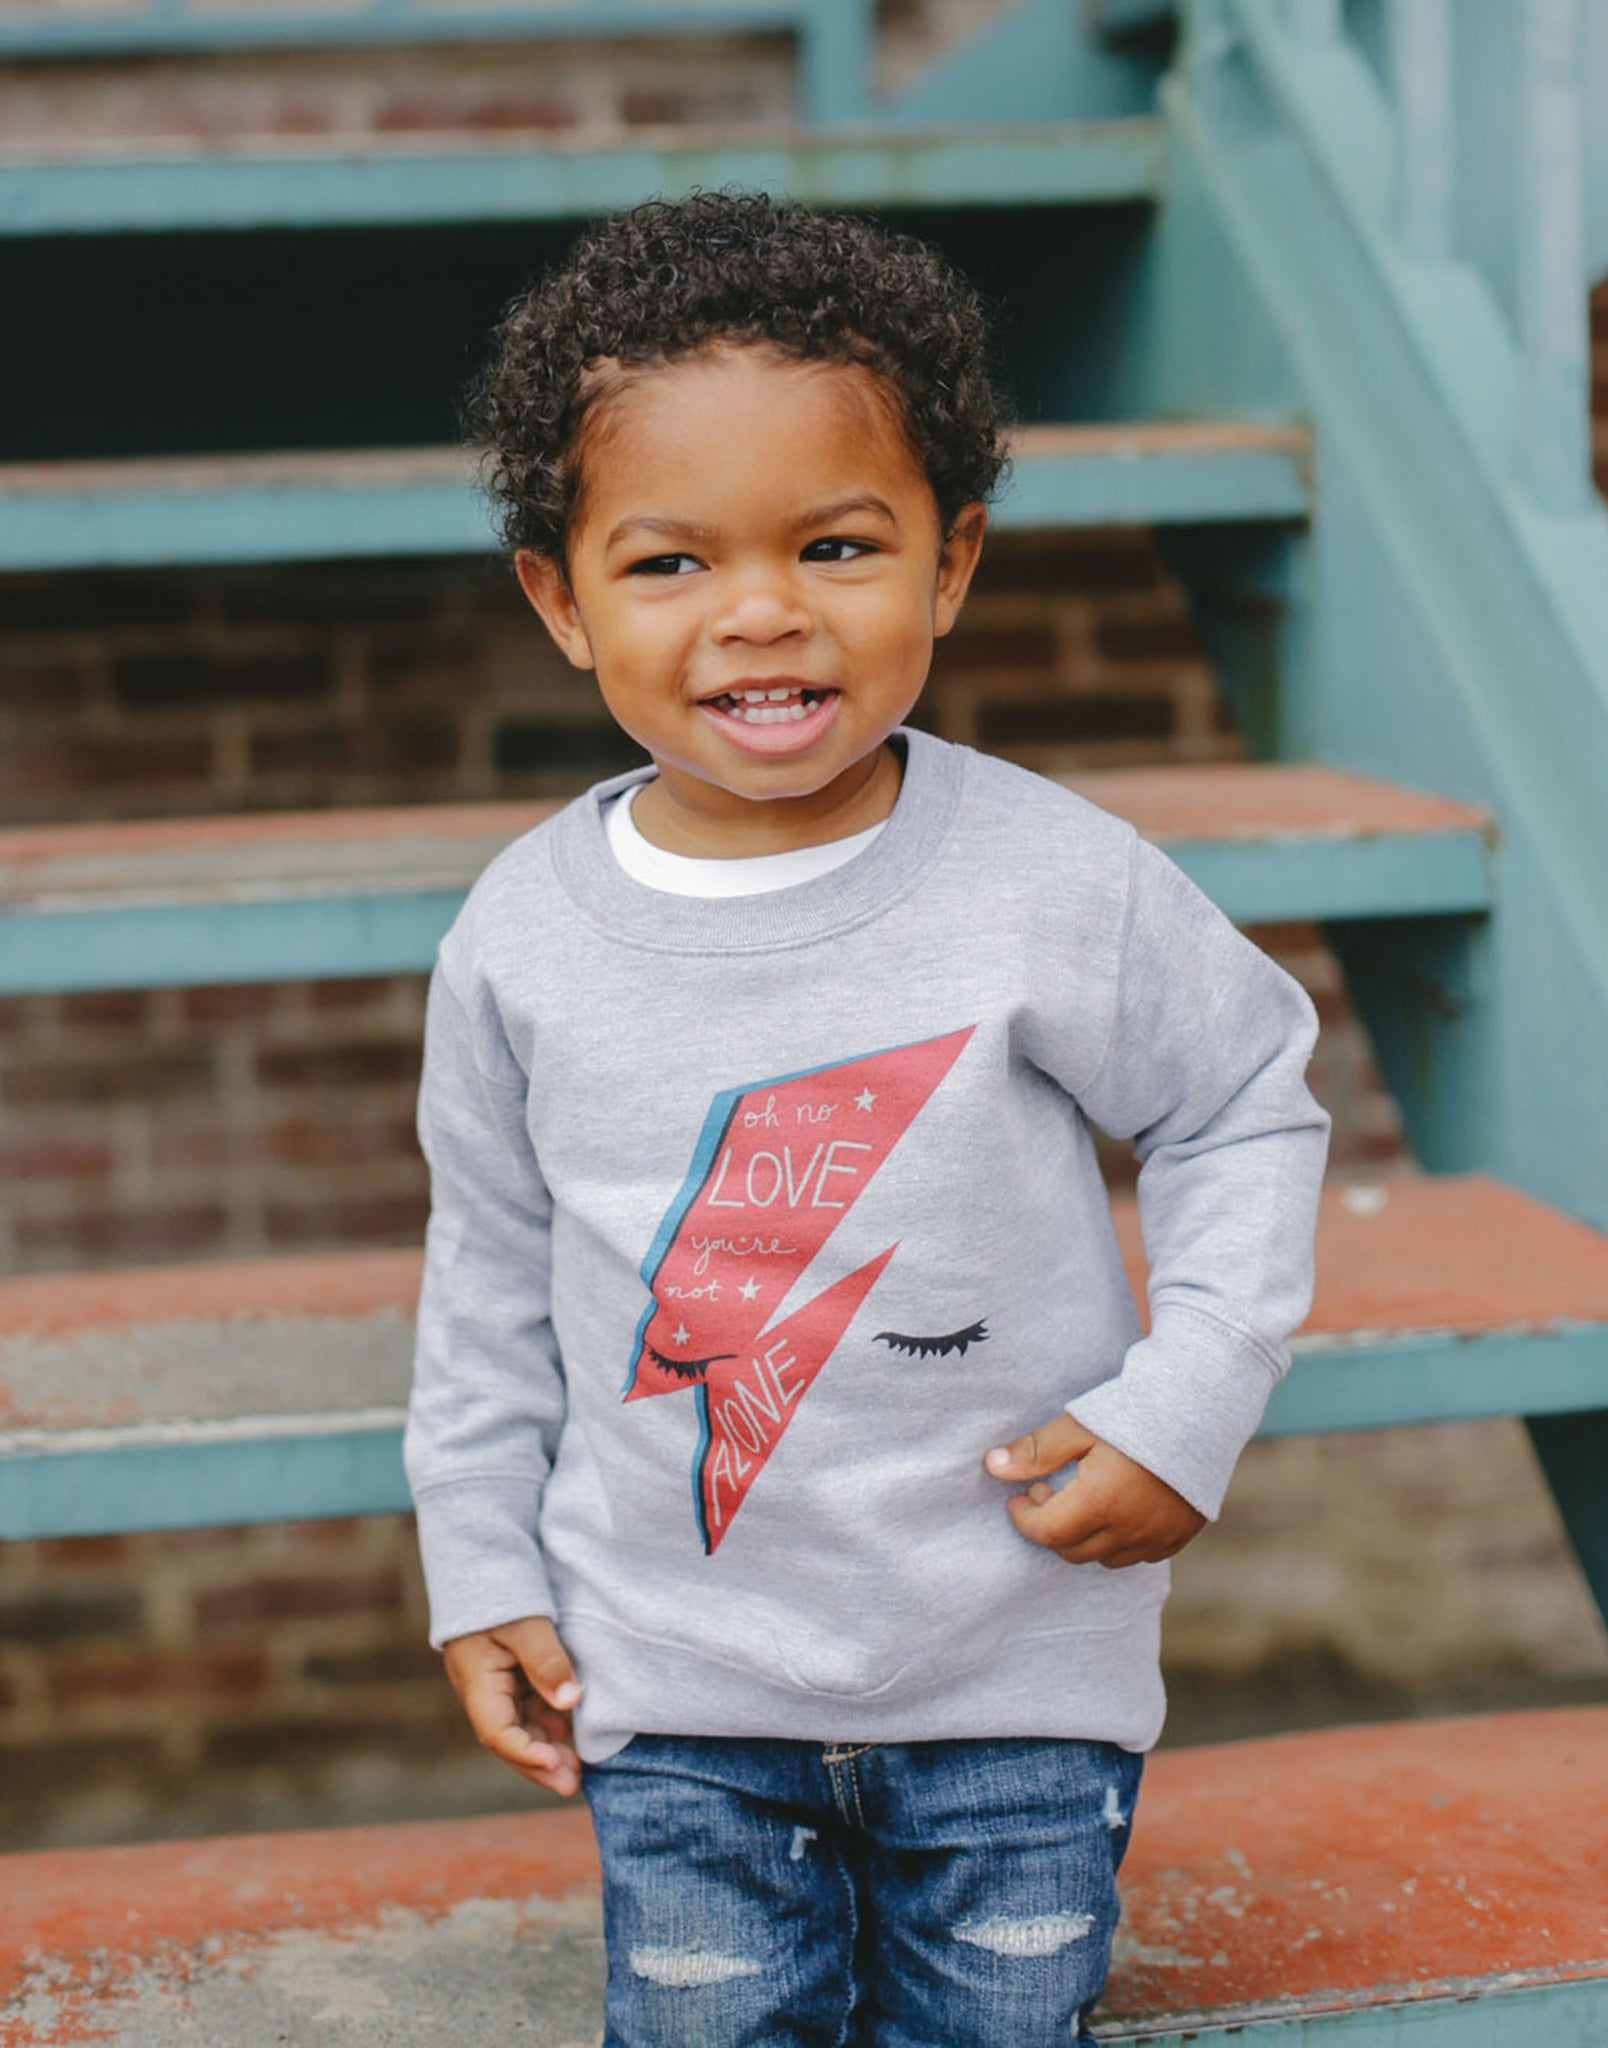 Bowie Love Kids Sweatshirt